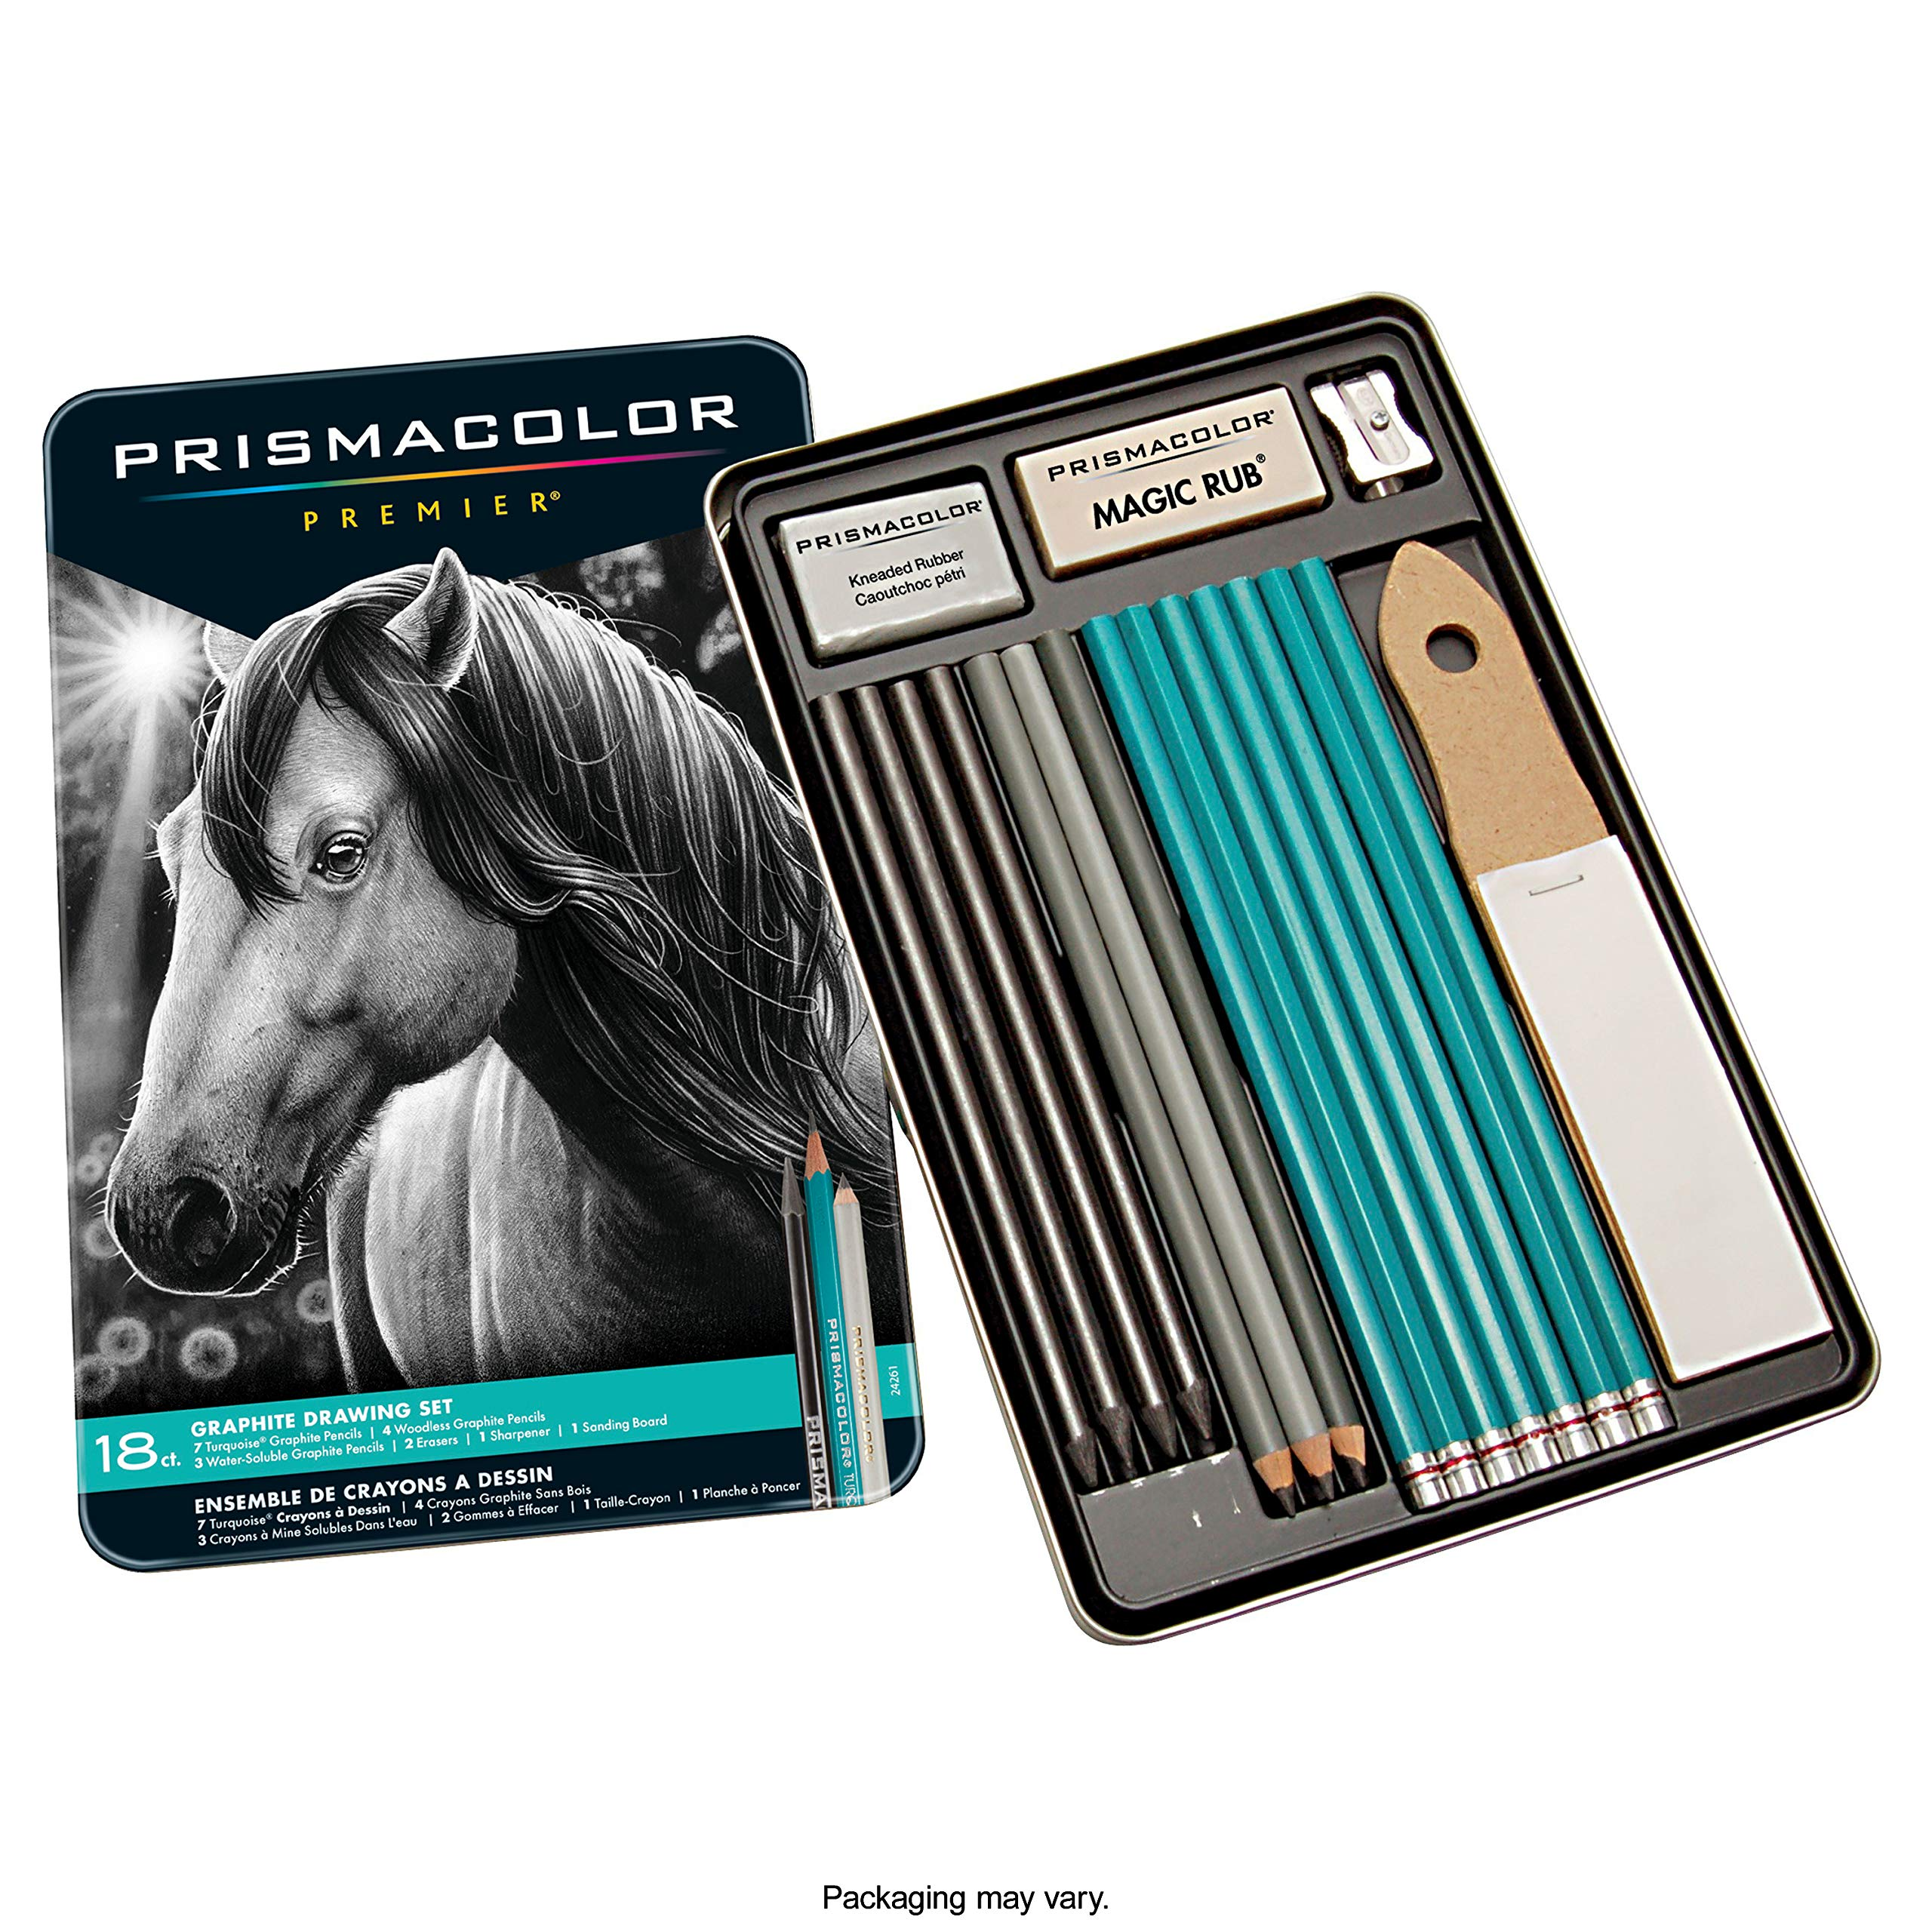 Prismacolor 24261 Premier Graphite Drawing Pencils with Erasers & Sharpeners, 18-Piece Set by PRISMACOLOR